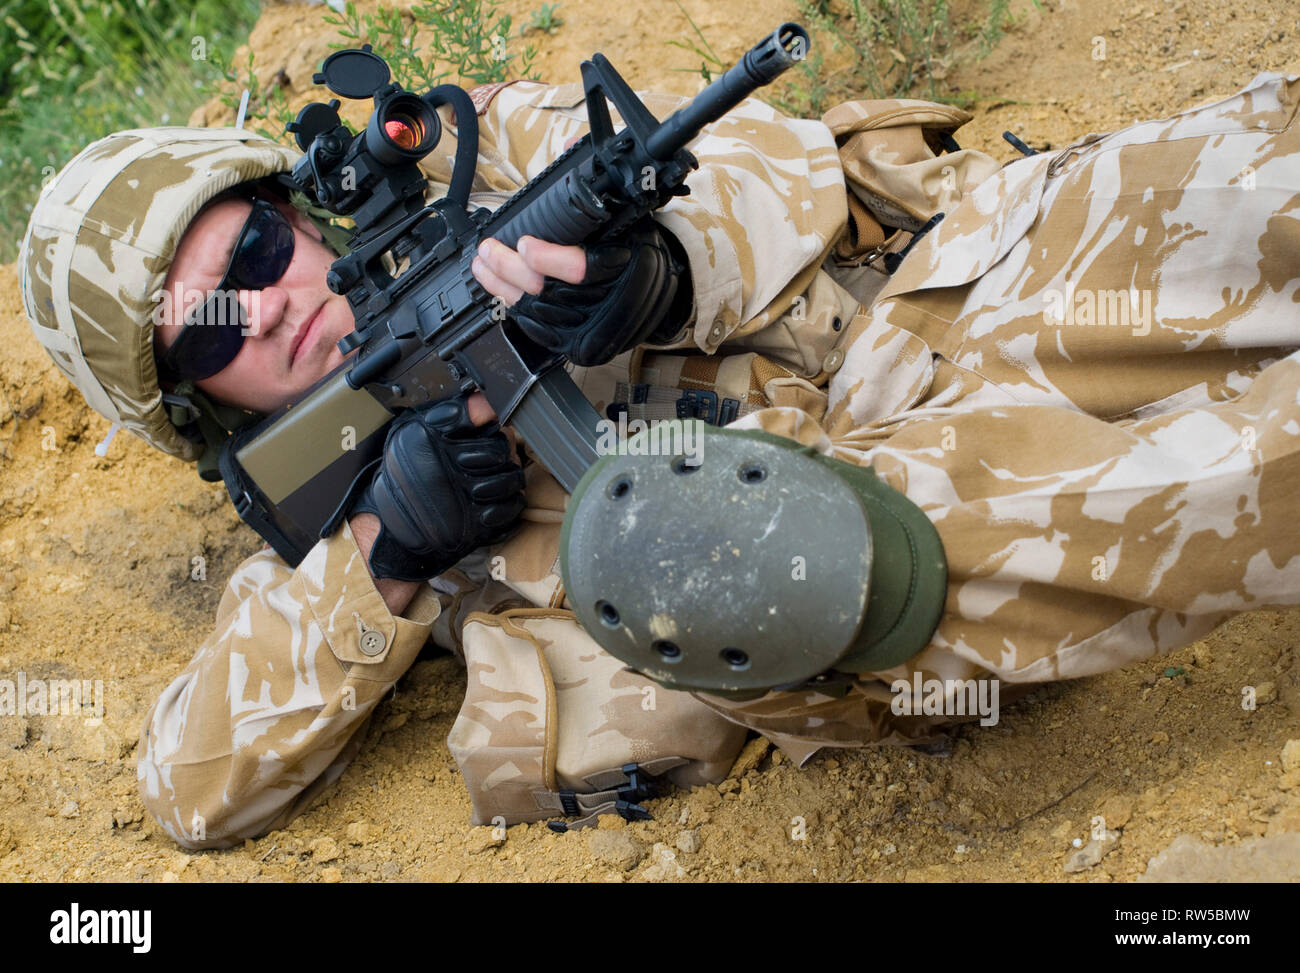 British soldier in desert uniform in action. - Stock Image